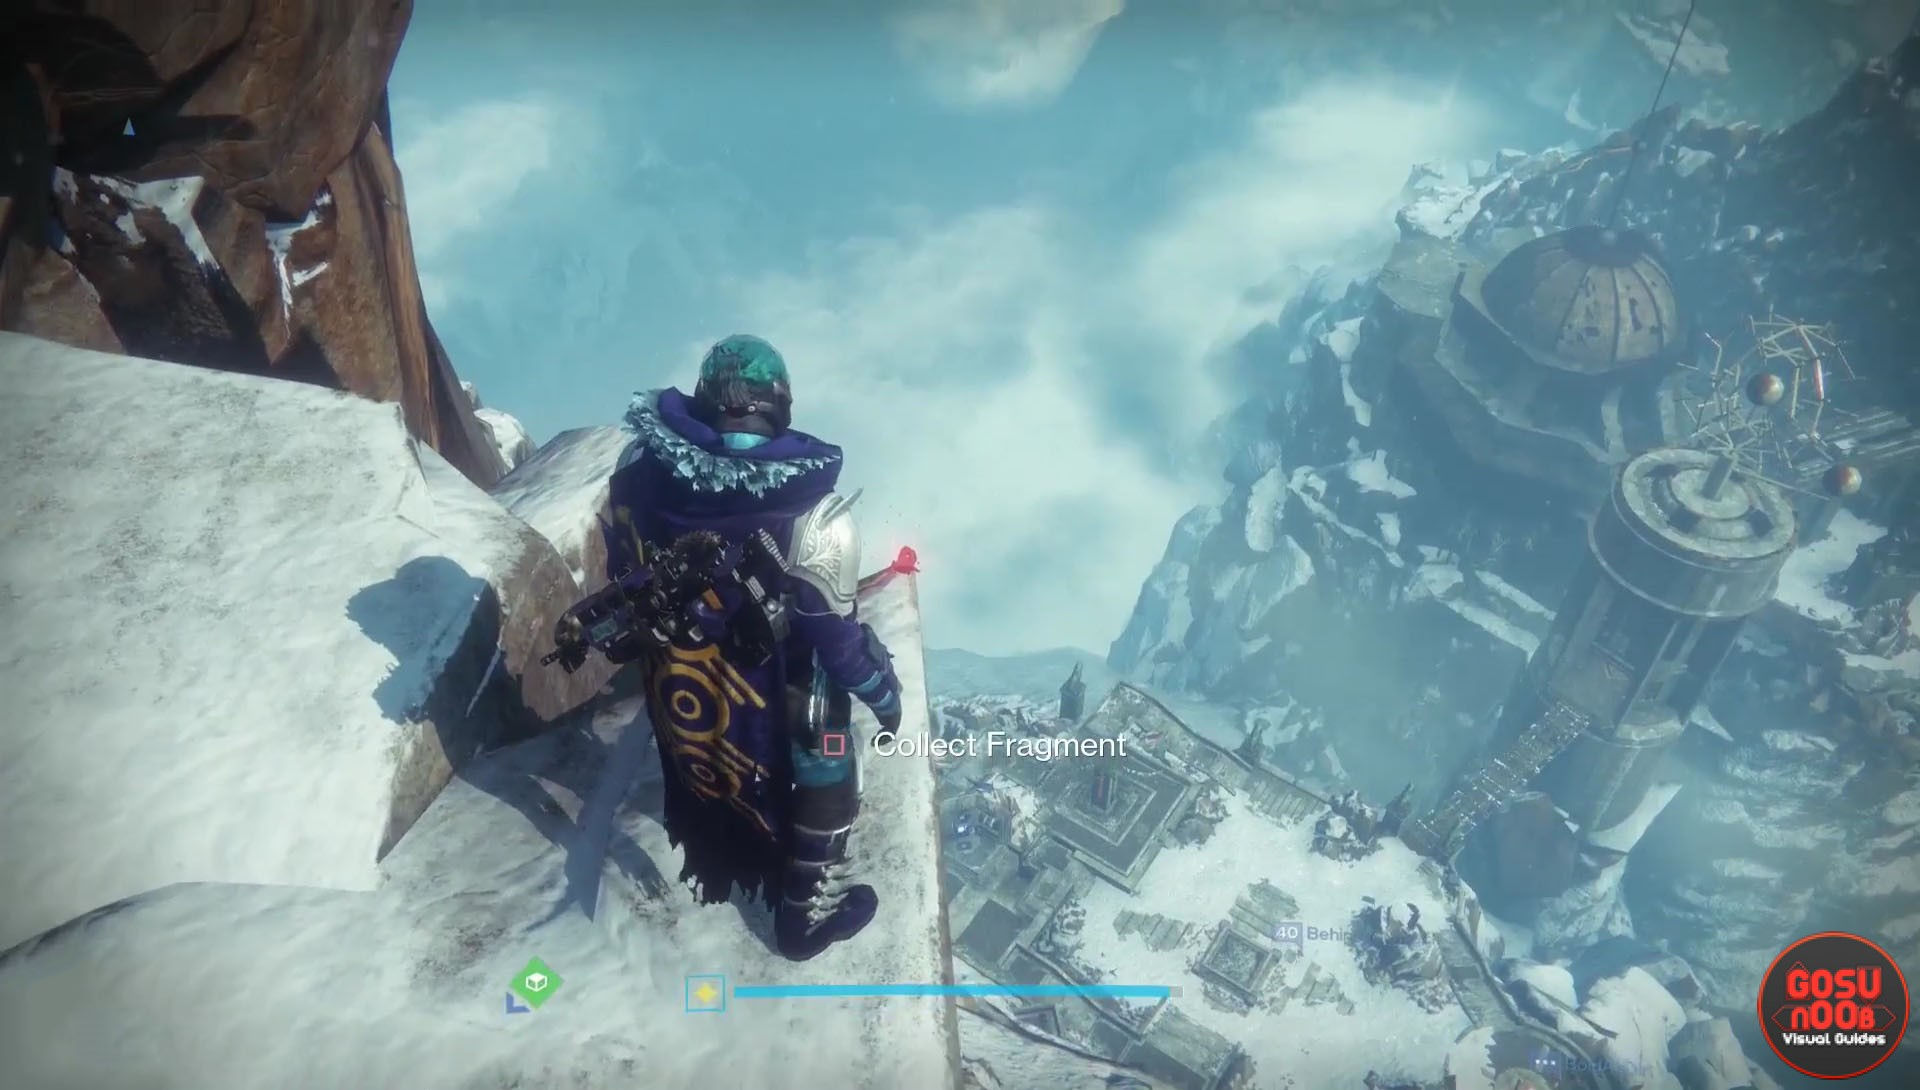 Is there a trading system in destiny